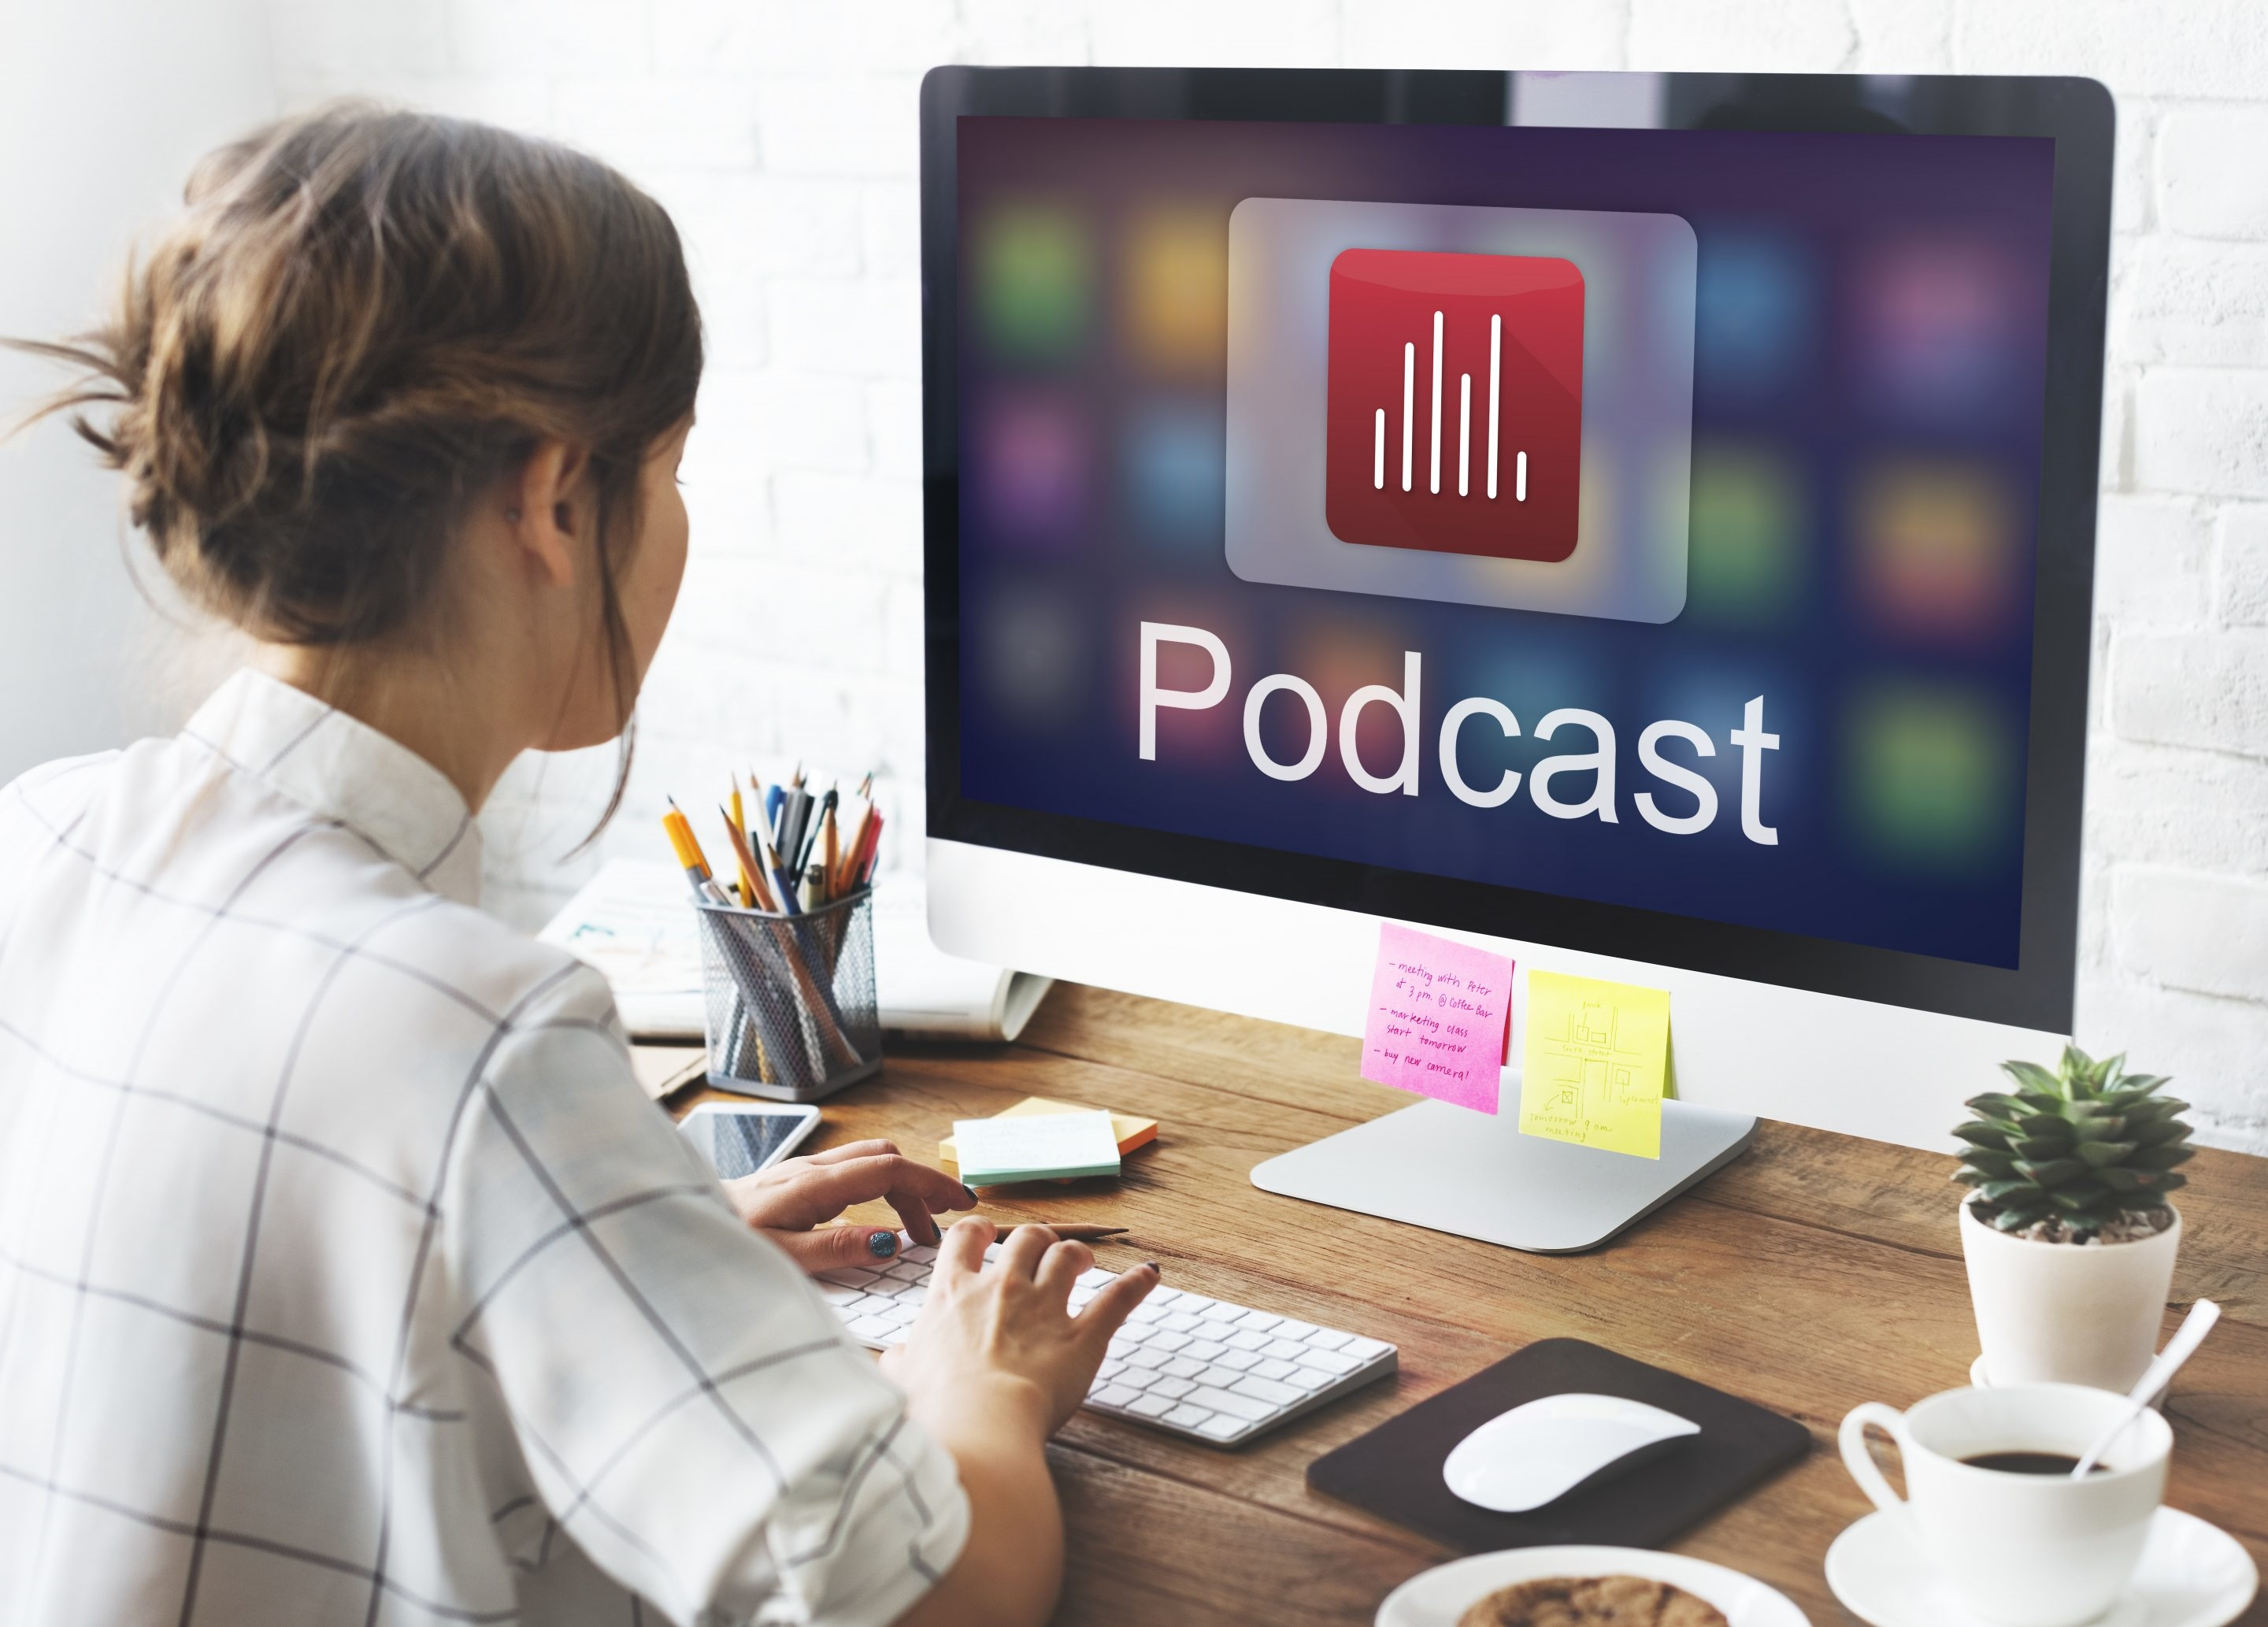 Listen Up: 4 Reasons To Make Podcasts Part Of Your Digital Marketing Strategy